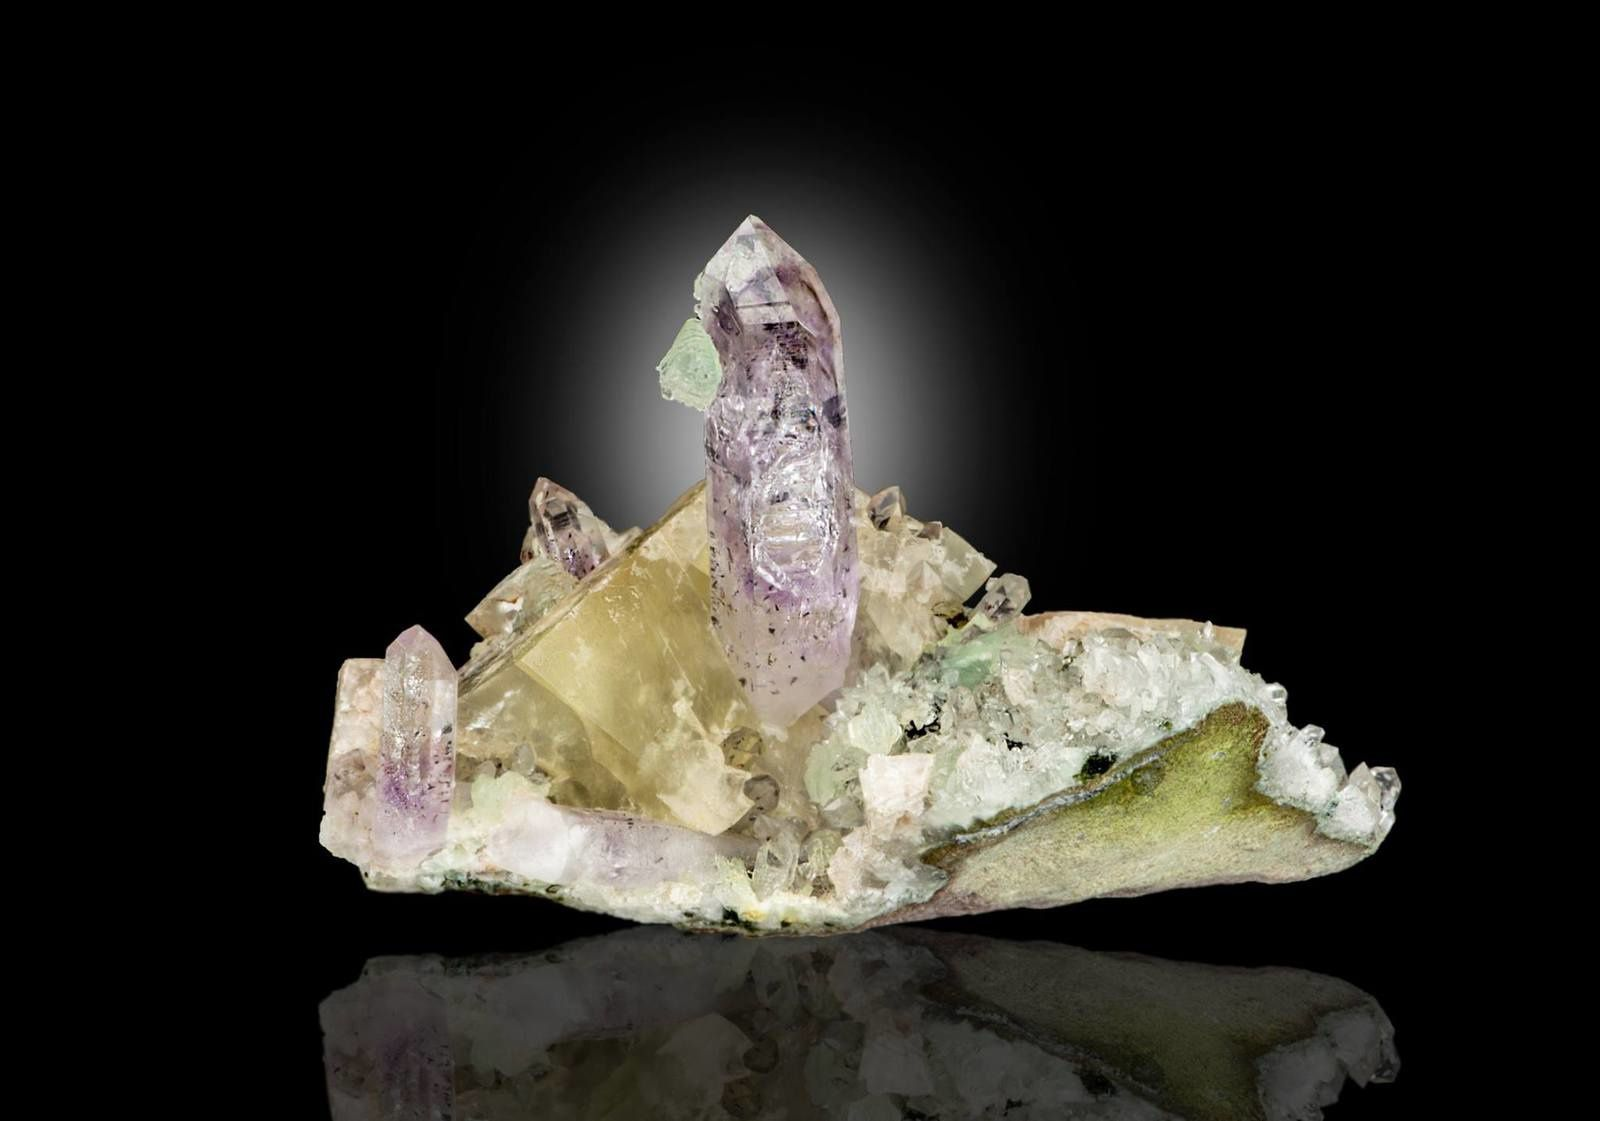 Amethyst Calcite from Namibia (specimen and photo by Blake Barnett)